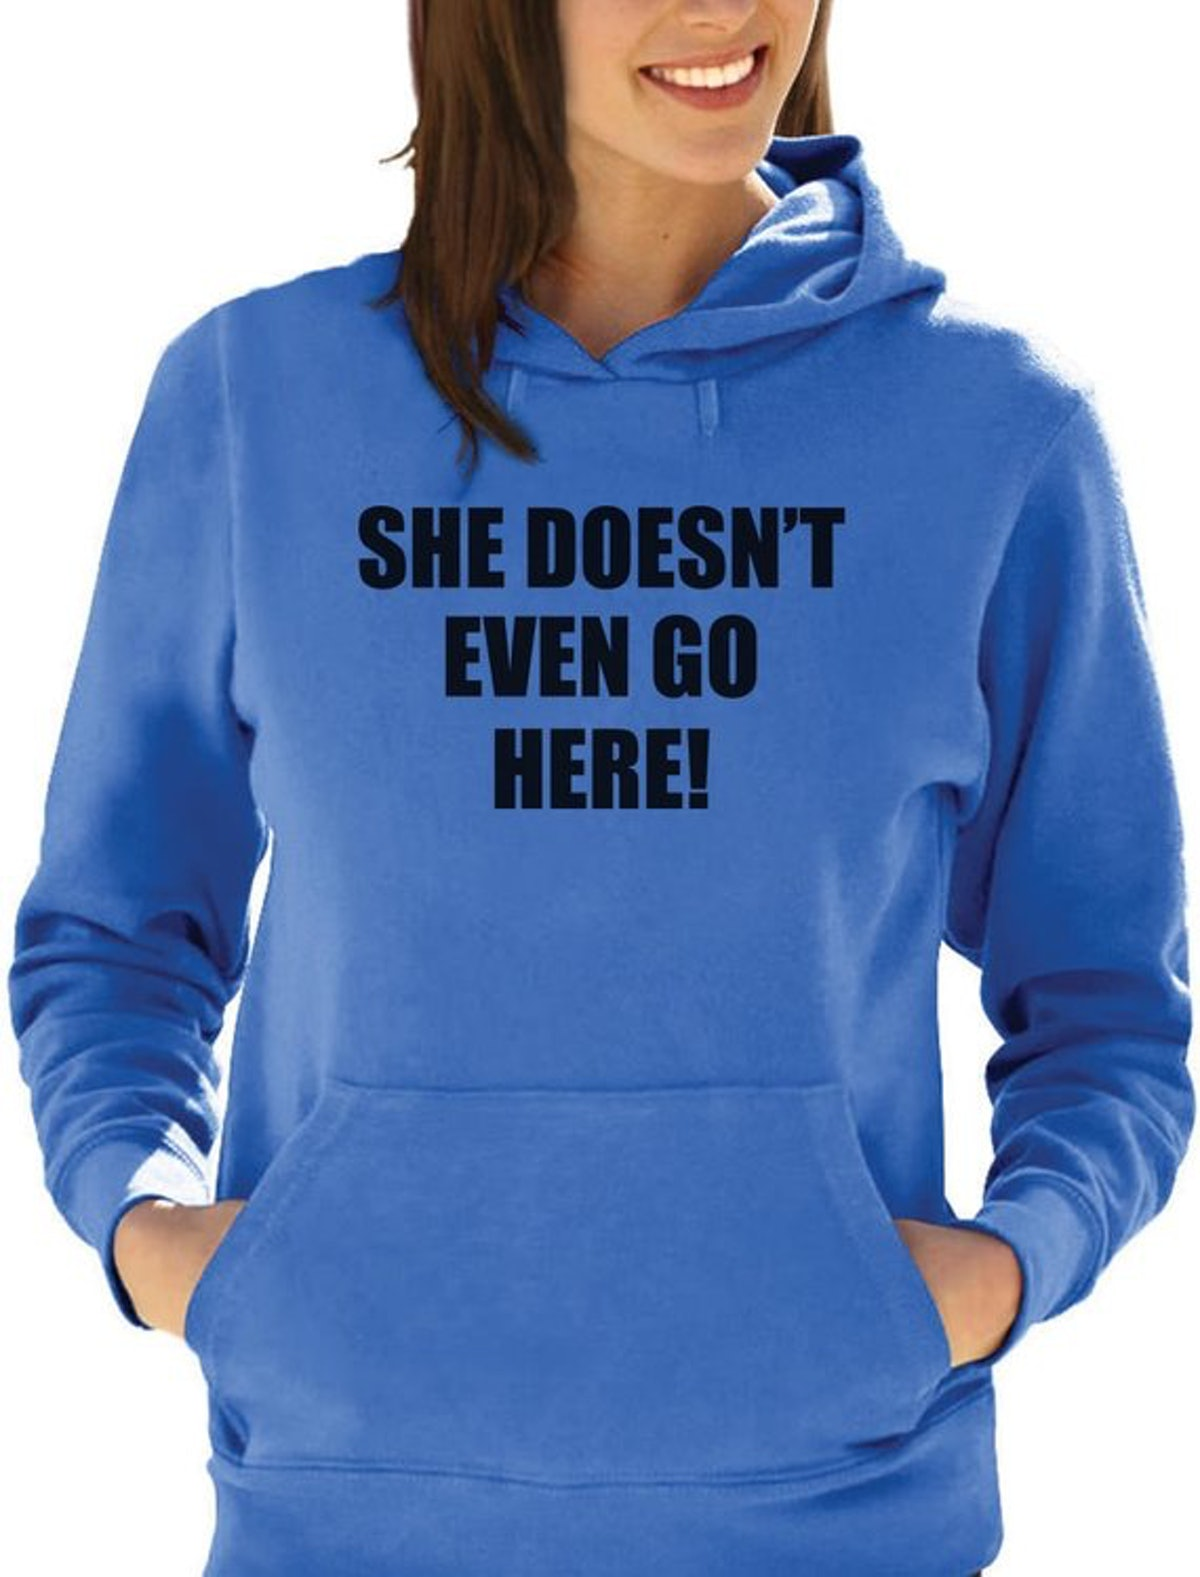 She Doesn't Even Go Here! Hoodie